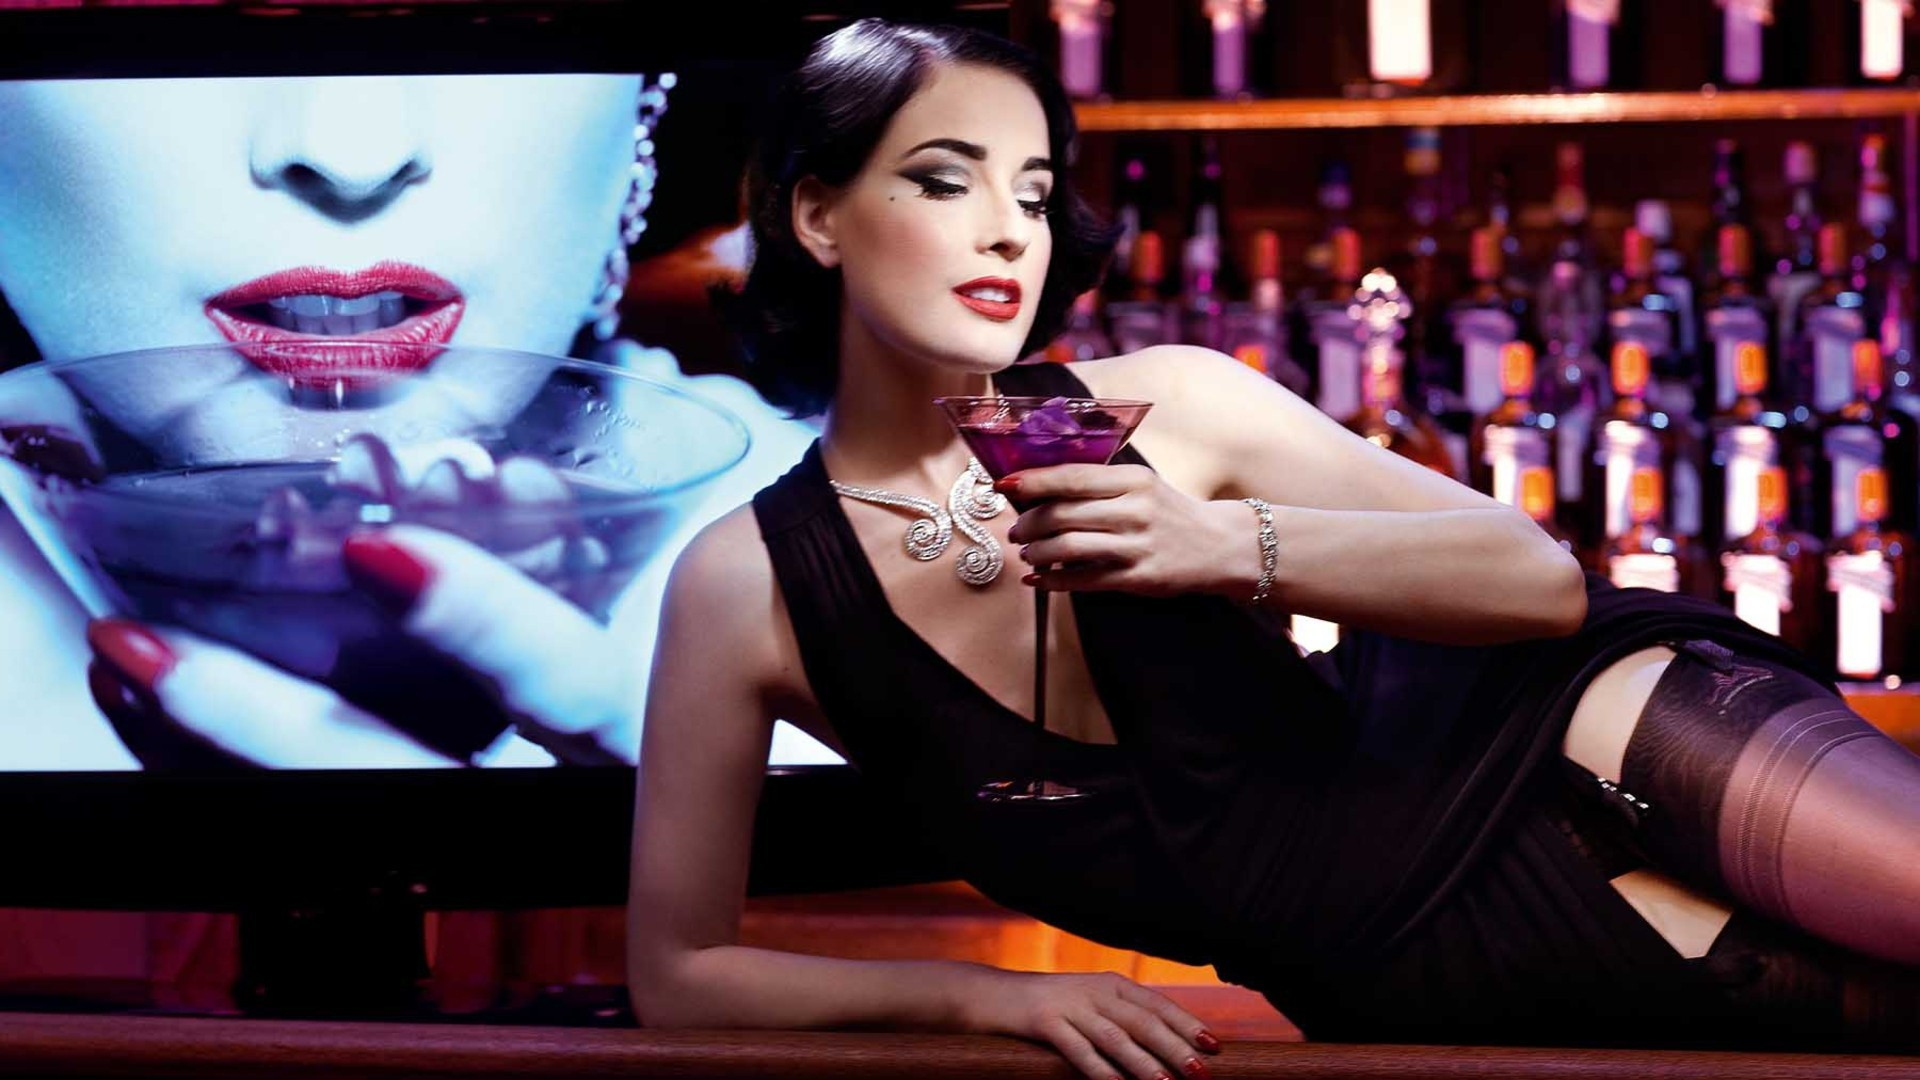 Andrew Blake Dita Von Teese dita von teese hd wallpapers for desktop download